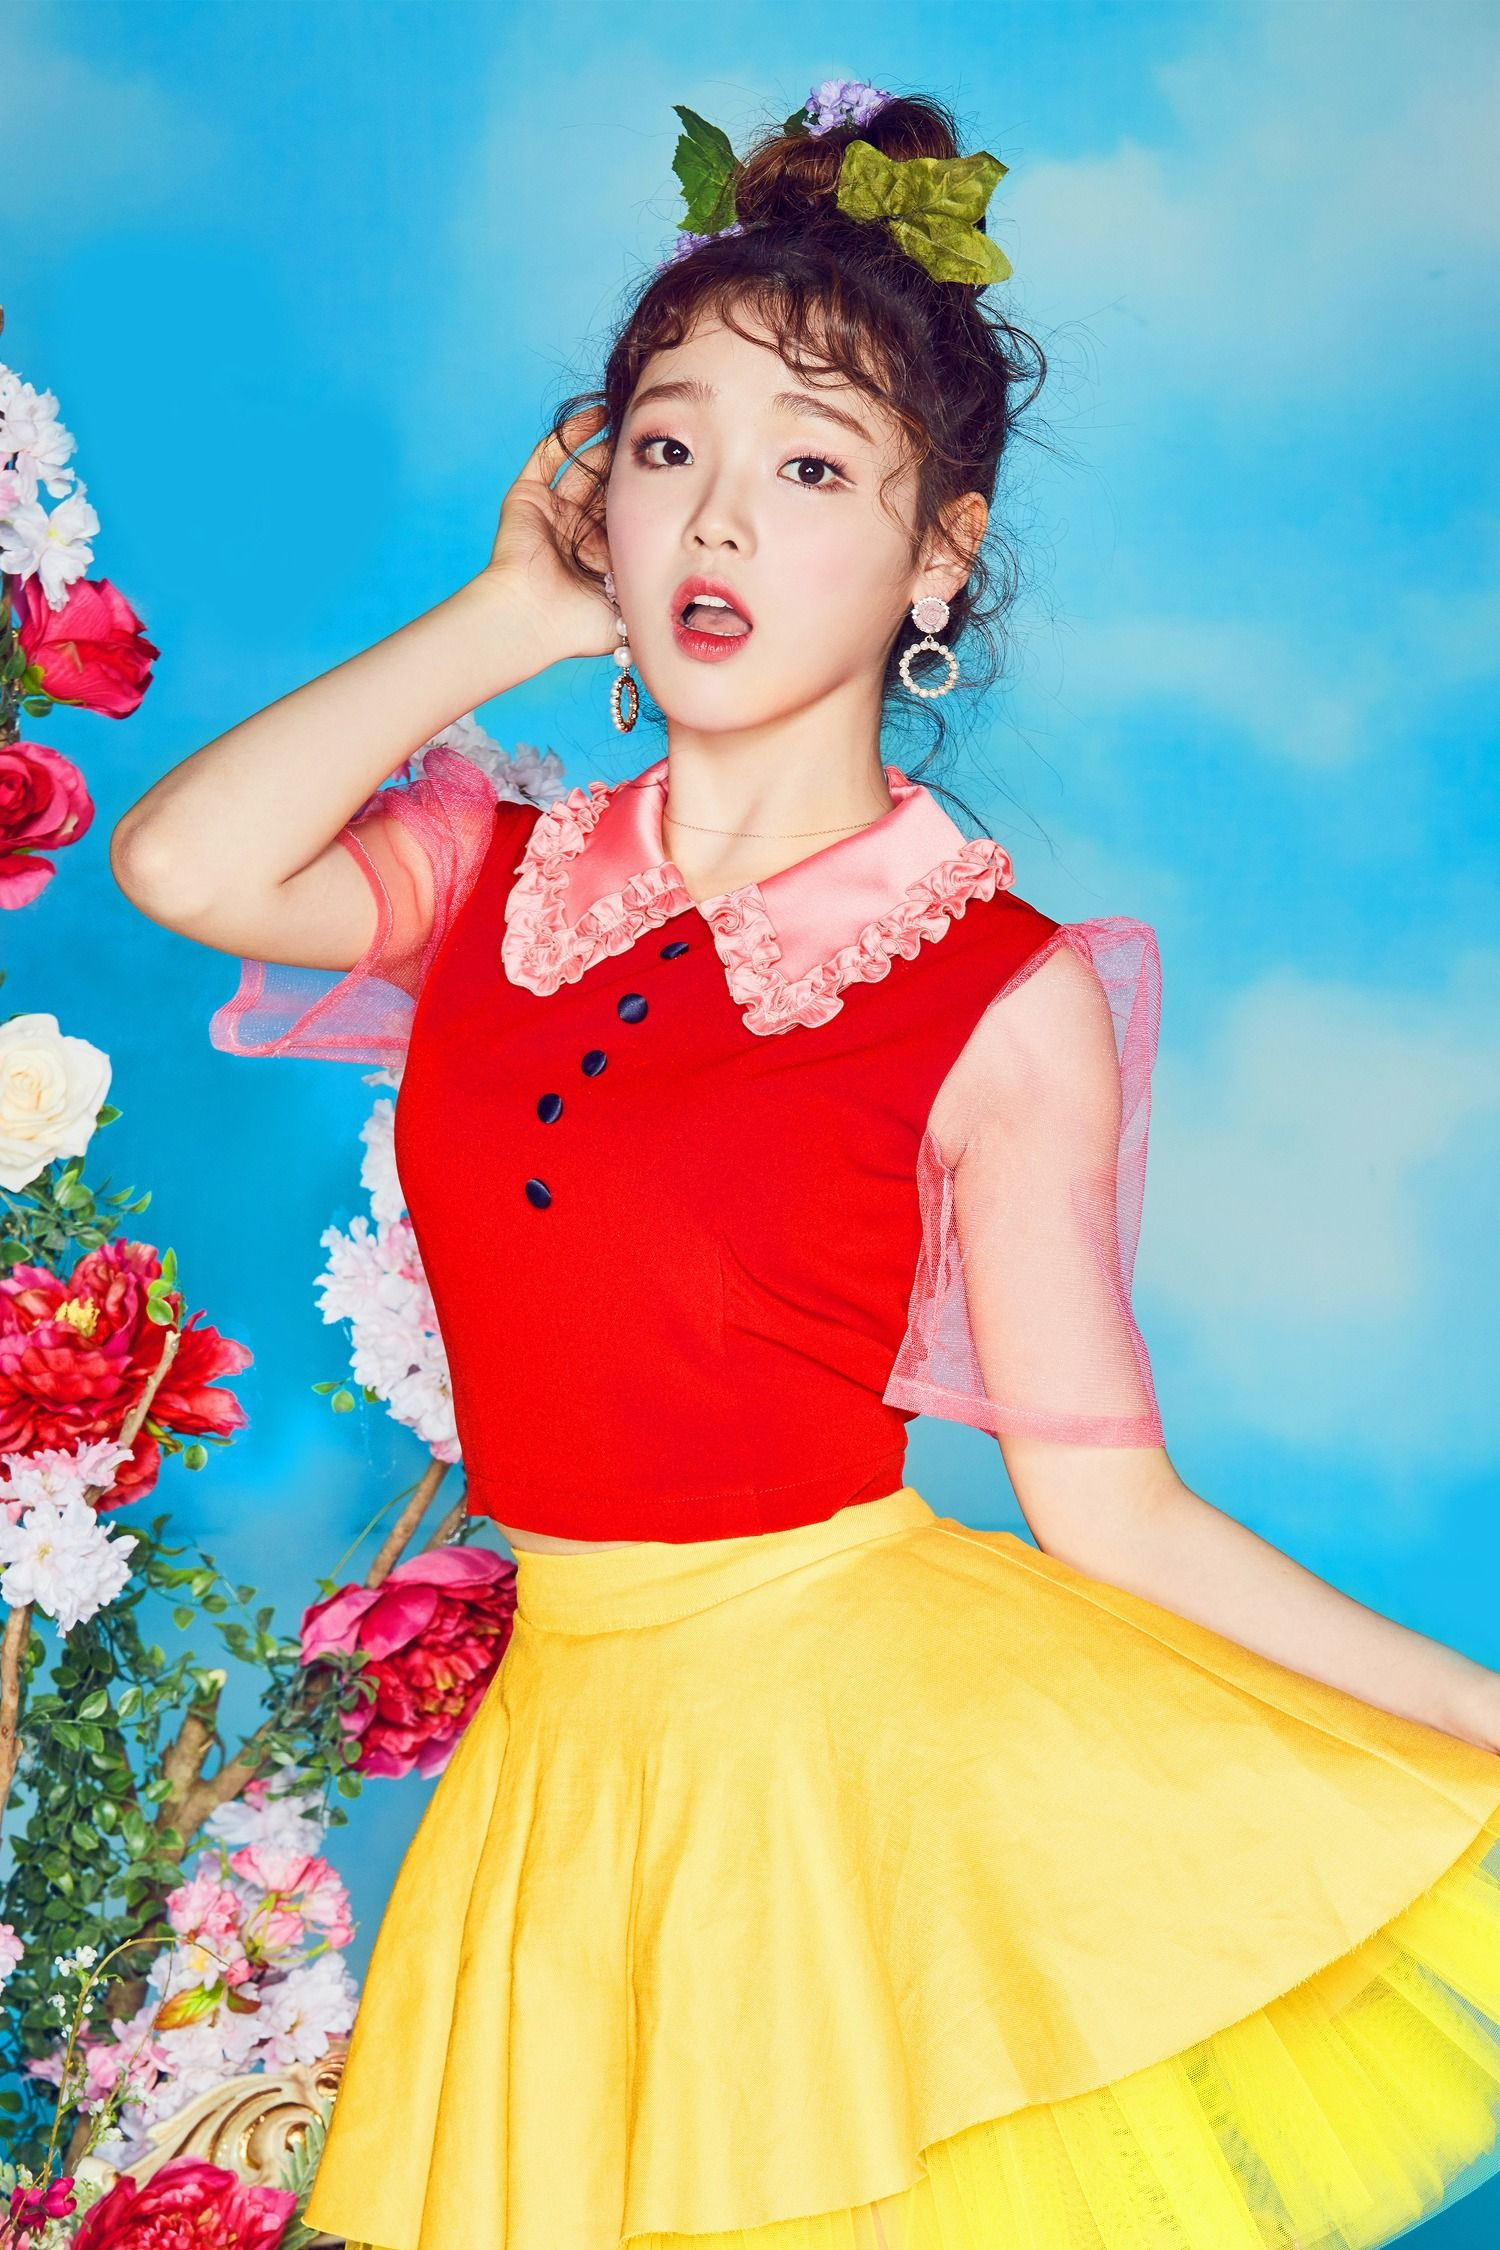 Oh My Girl Seunghee - Coloring Book   Oh My Girl (오마이걸 ...